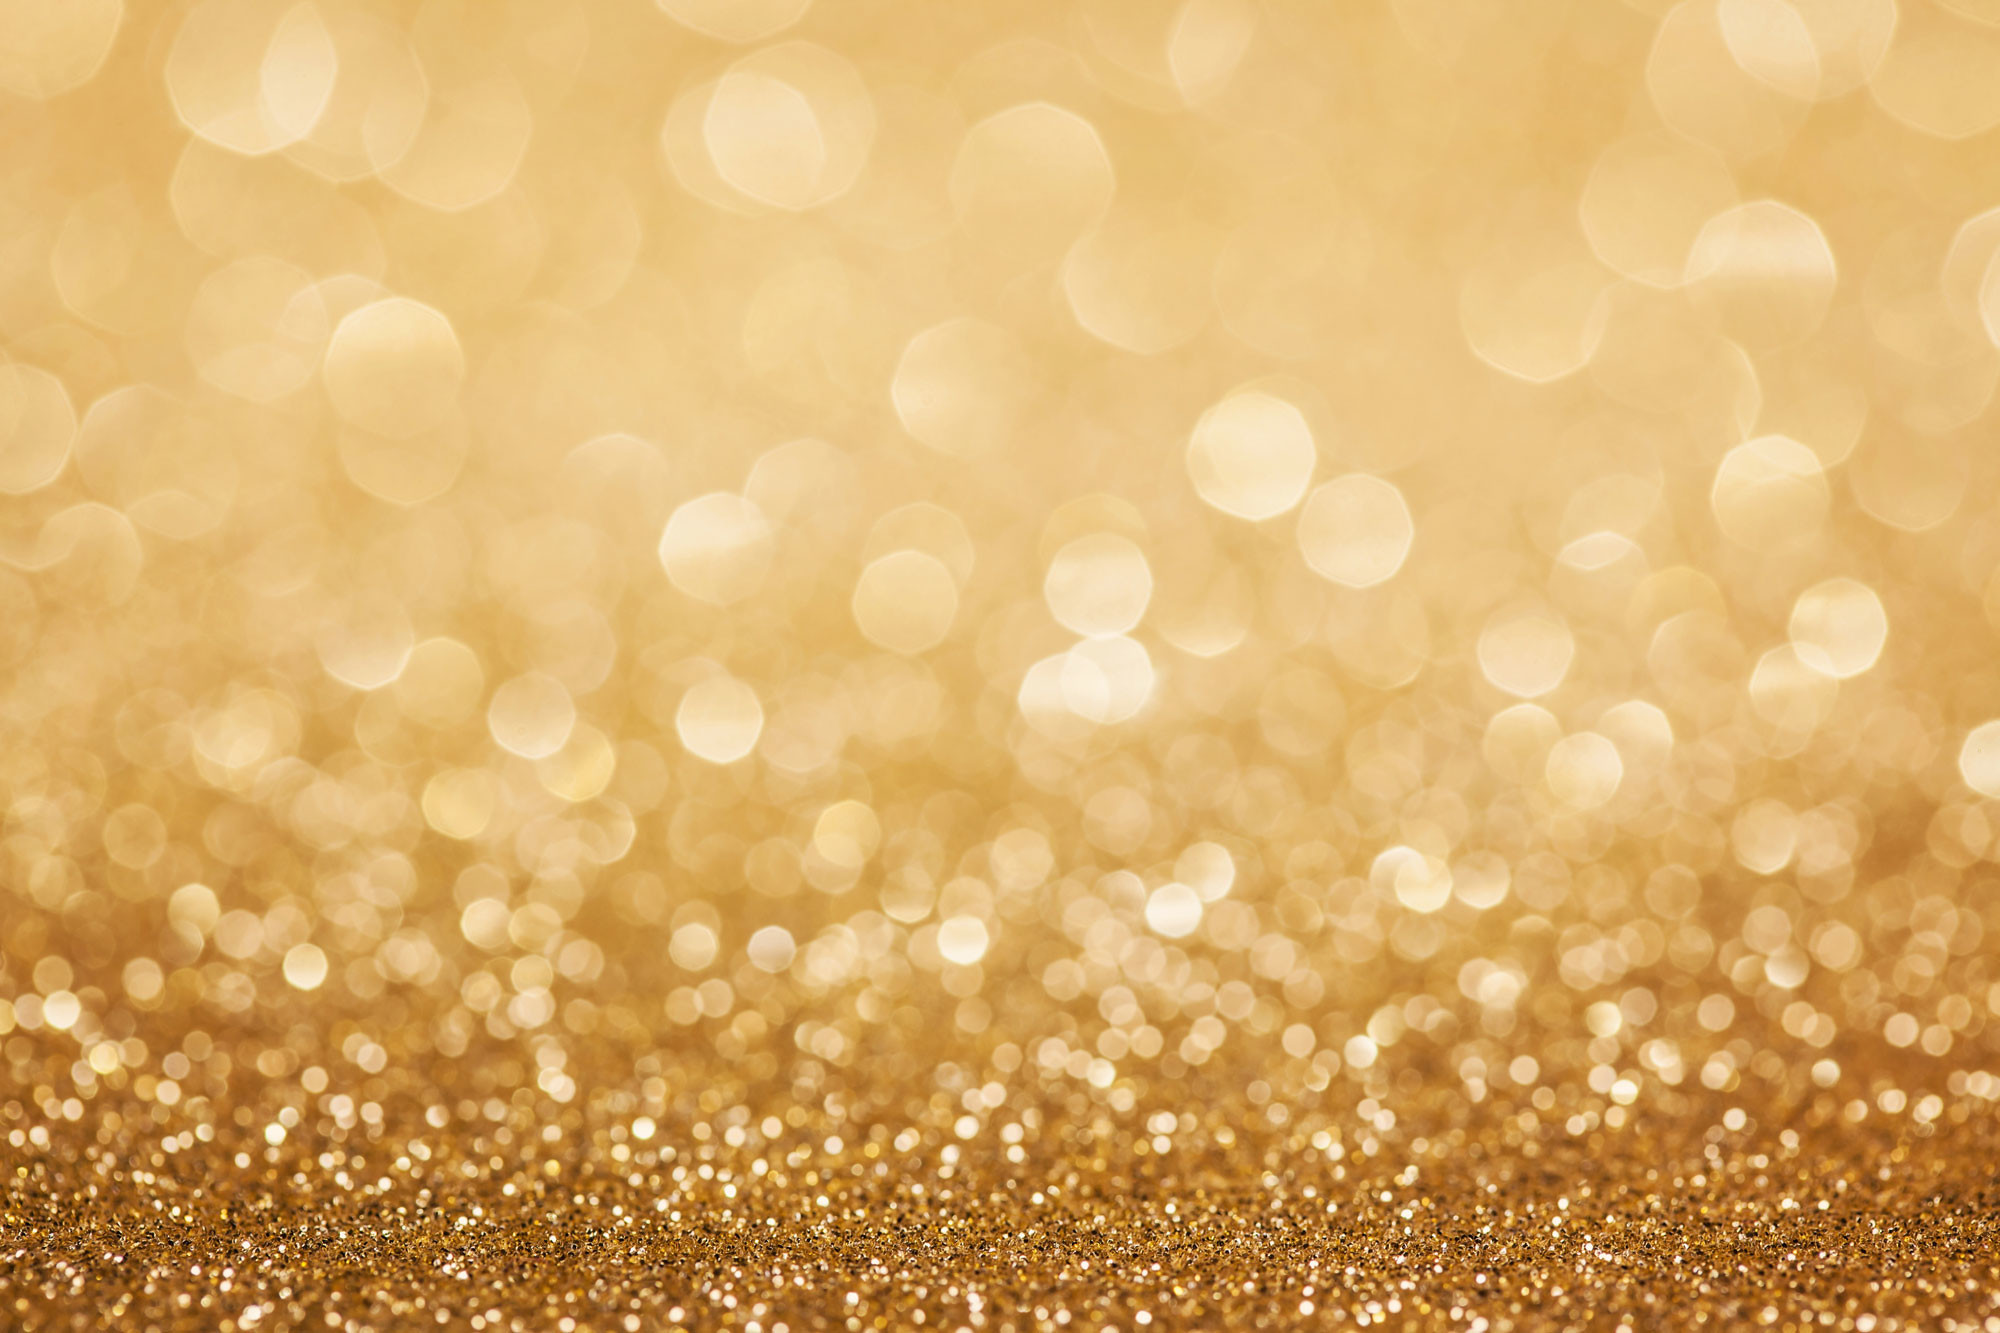 2000x1333 Explore and share Gold Glitter Background Wallpaper on WallpaperSafari